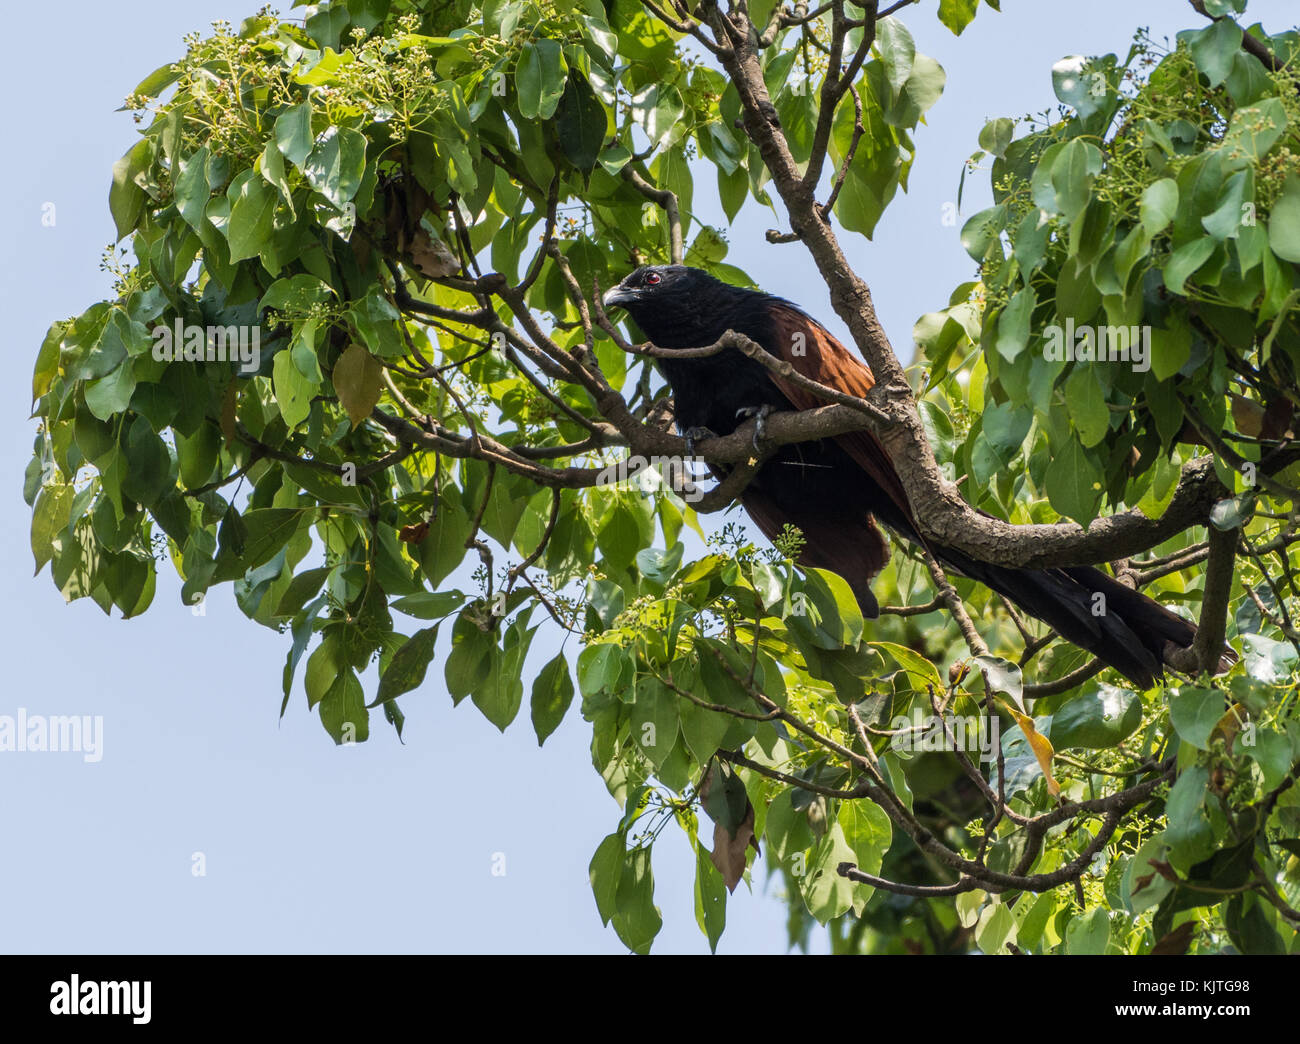 A Madagascar Coucal (Centropus toulou) perched on a tree. Madagascar, Africa. - Stock Image